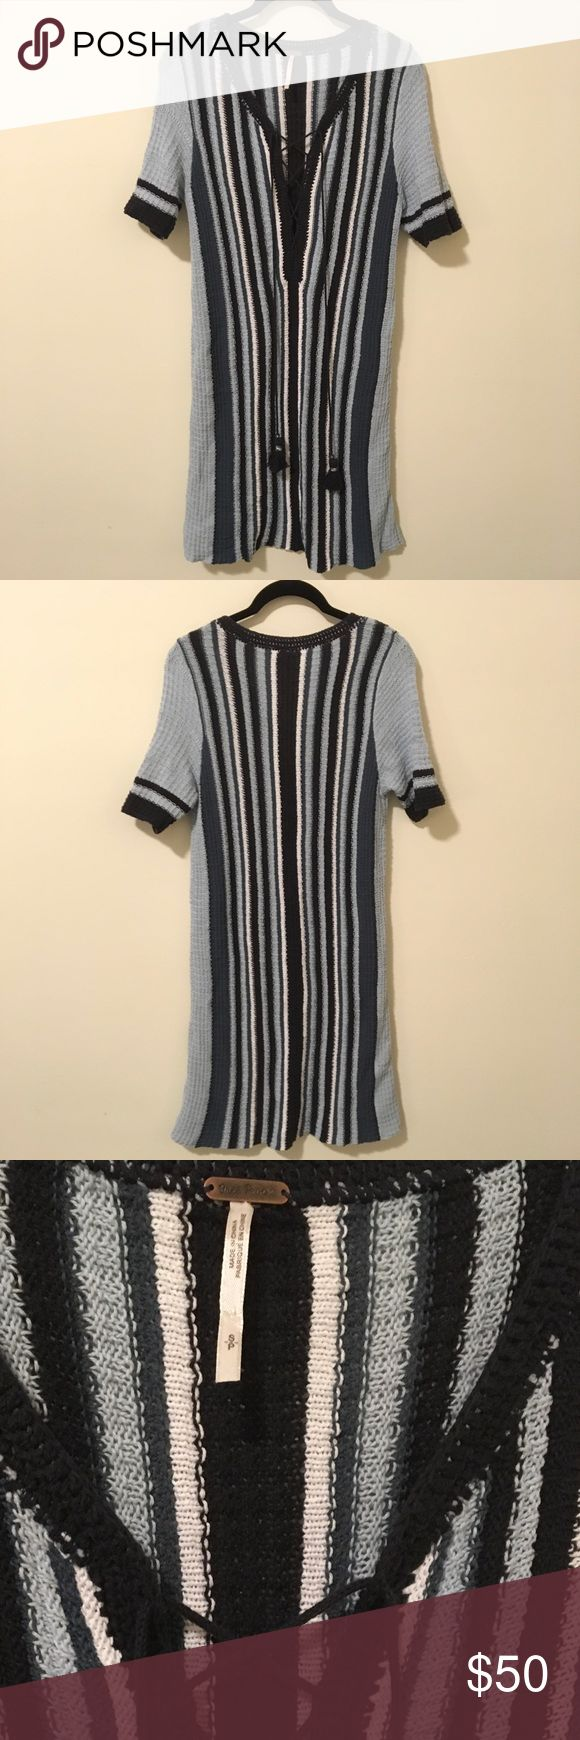 FREE PEOPLE Blue Lollipops Lace Up Sweater Dress Free People Lollipops dress with blue tones and stripes with a Lace Up front - made of cotton and is a light Knit sweater fabric. Size small and is just above the knee on me and I'm 5'5. Free People Dresses Midi